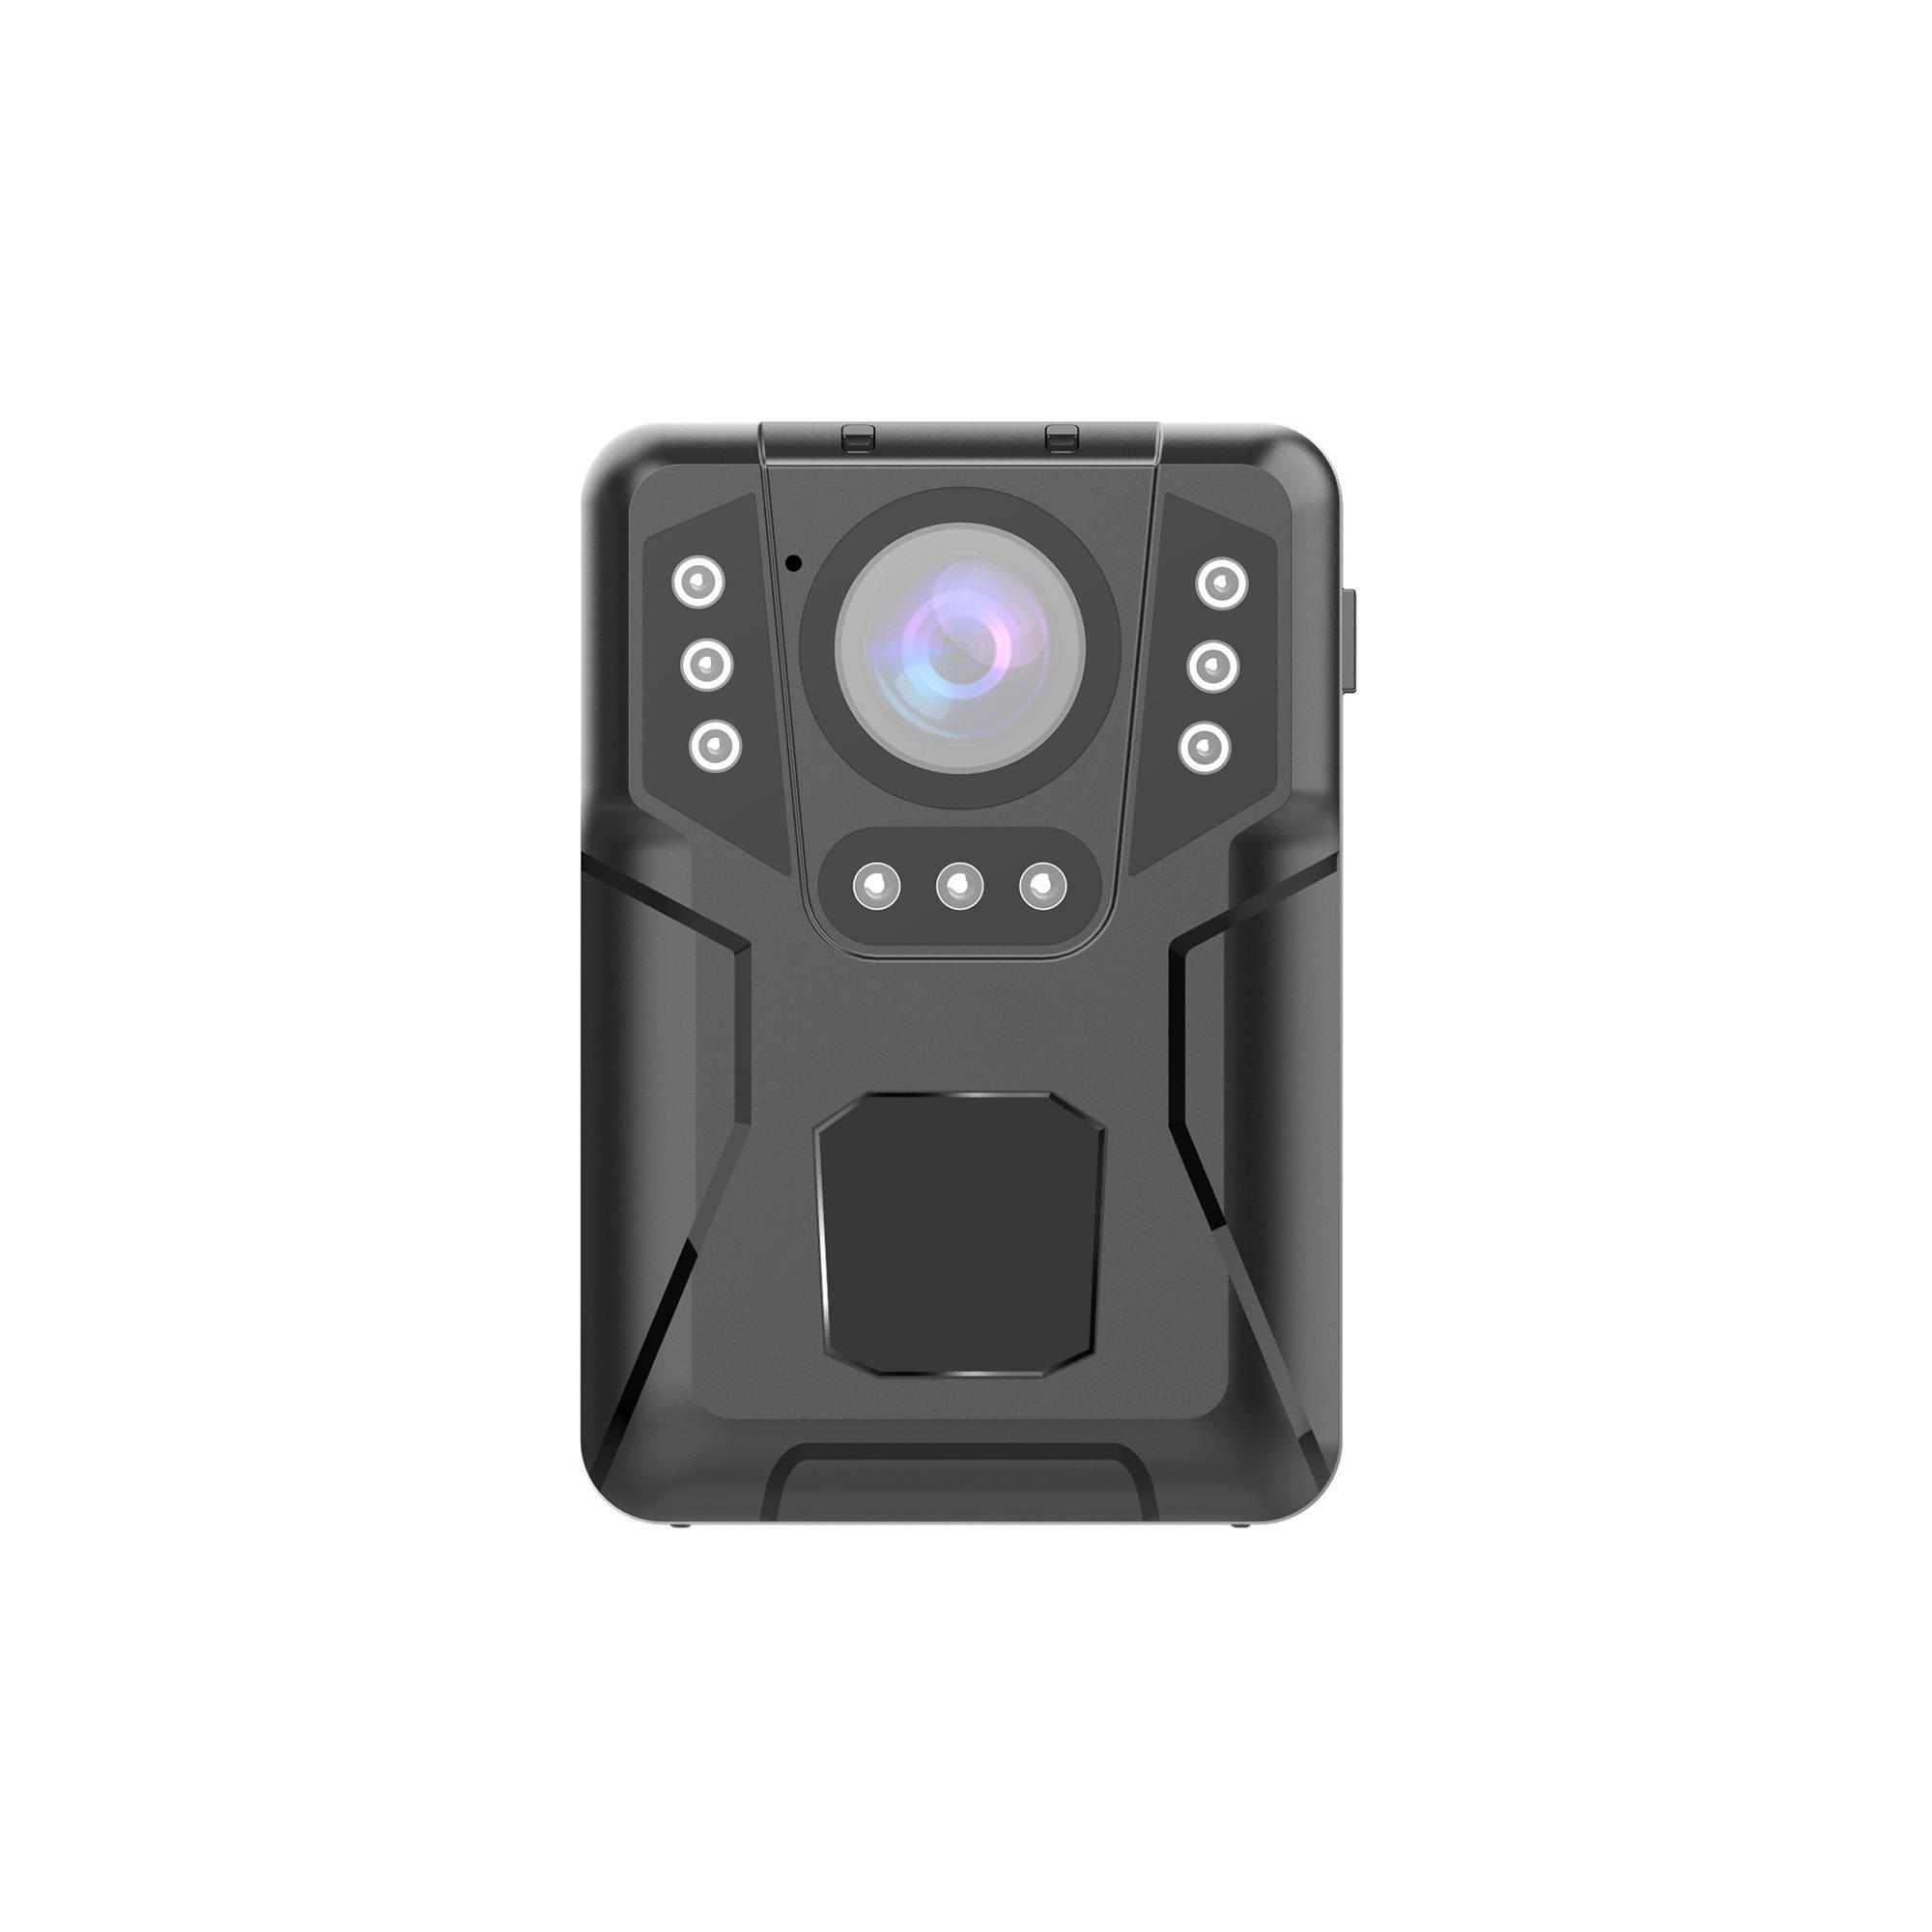 Brand New Laatste Video Codering Tech. Tiny Video Camera 1440P Wifi Ir Nachtzicht Cmos Politie <span class=keywords><strong>Dvr</strong></span>